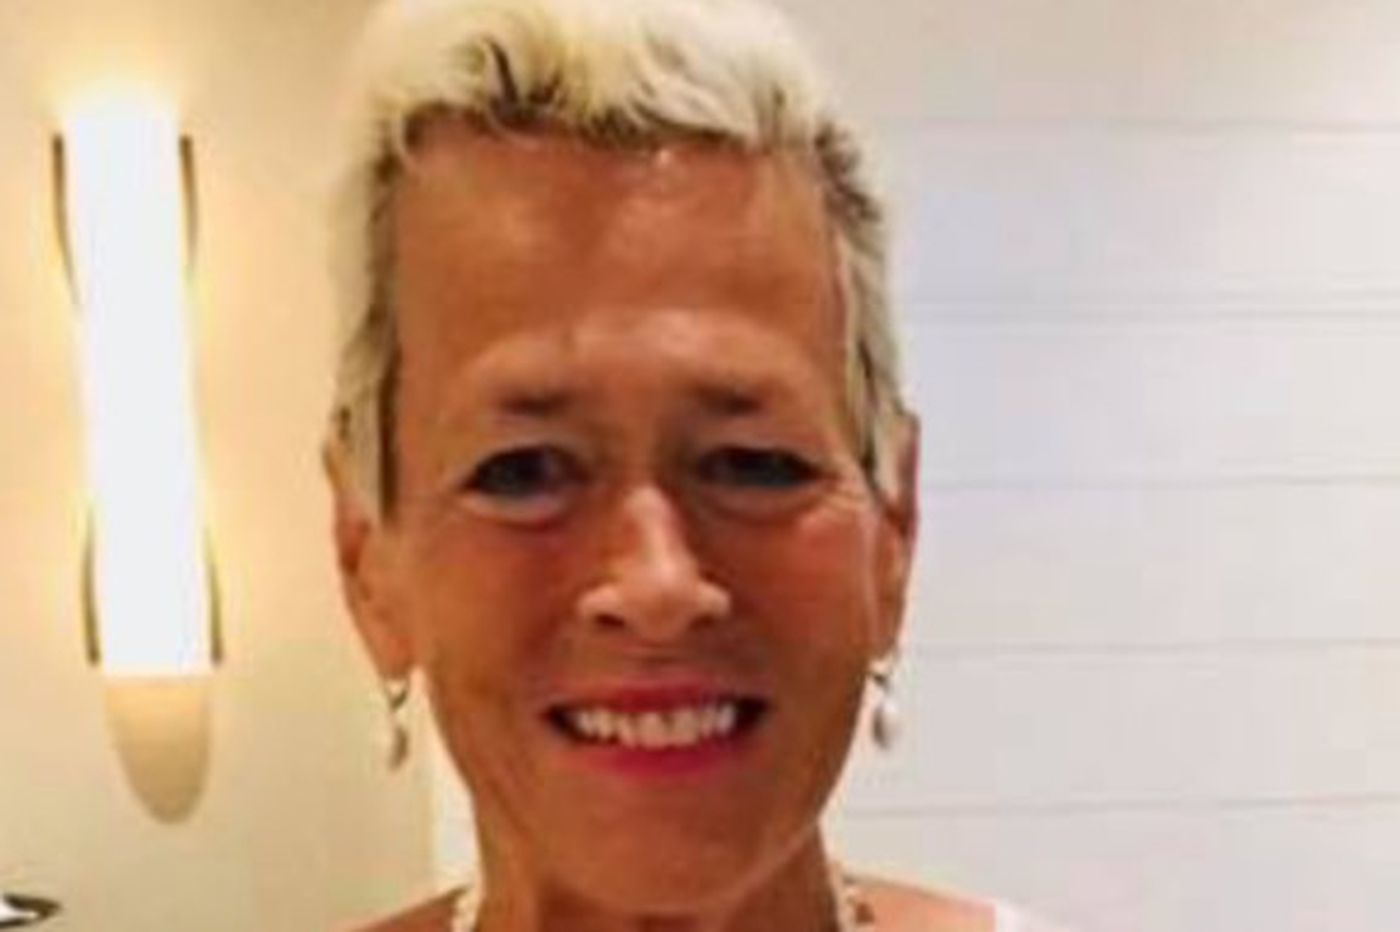 Alicia Arizin Sterling, 63, of Haverford, a nurse, mother, and community volunteer